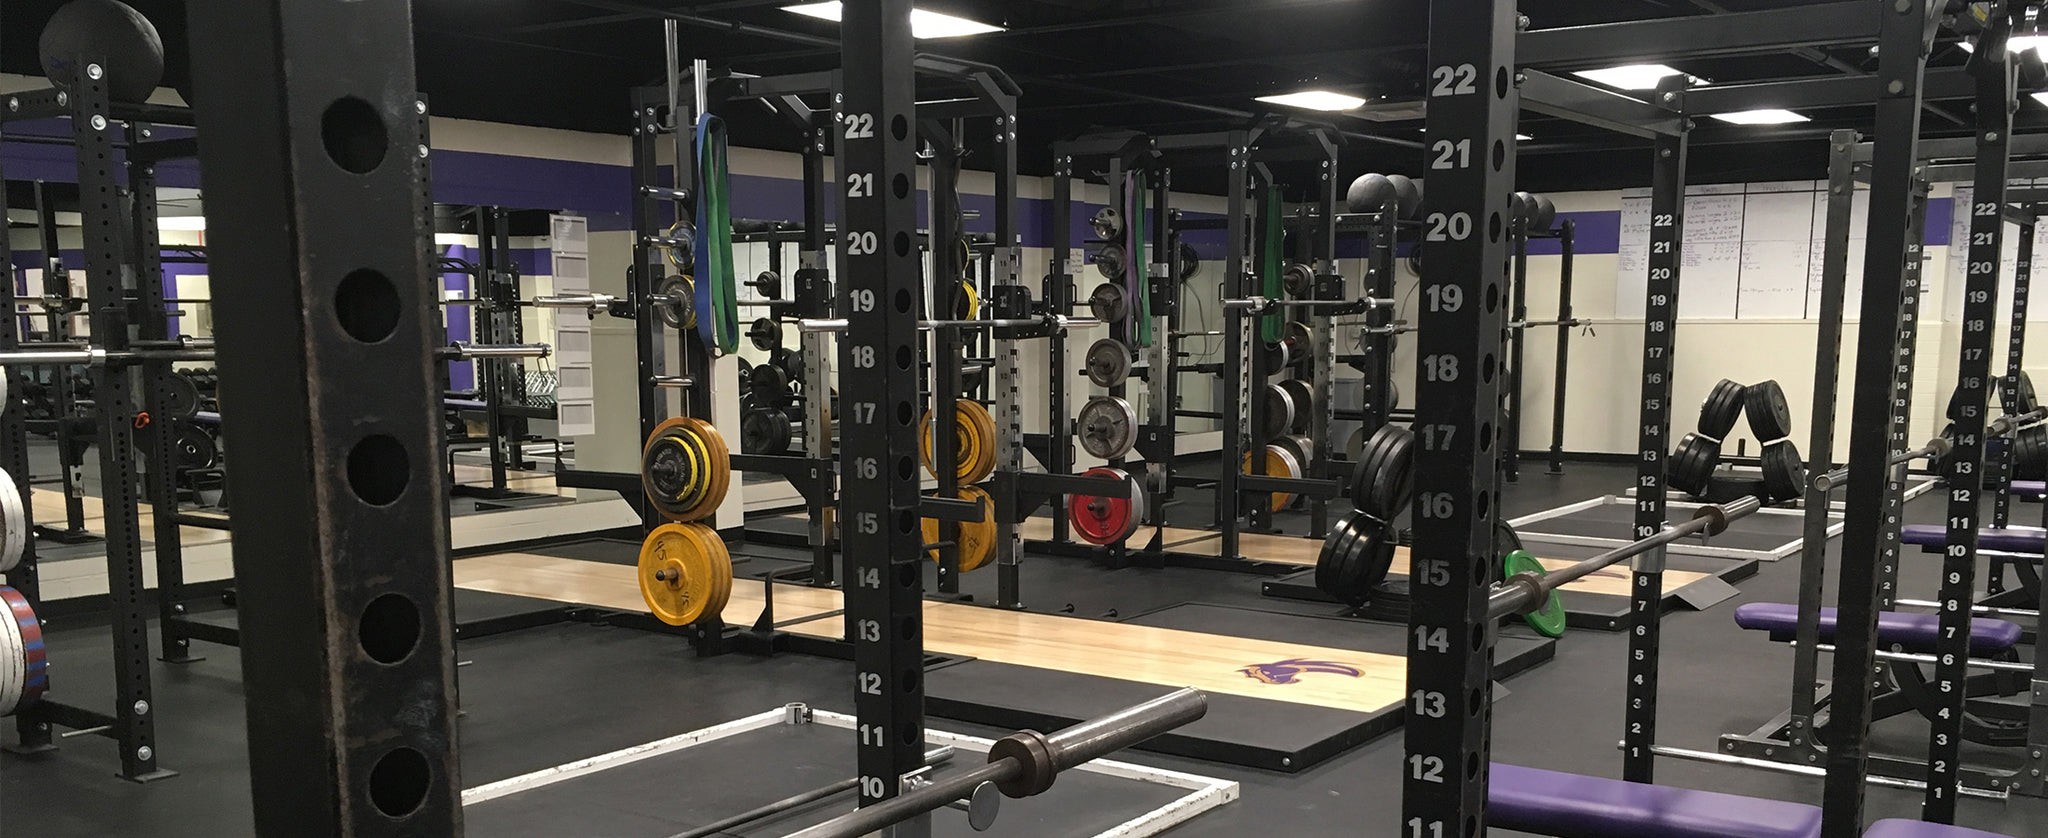 BFS - 40 Years Strong – Weight Room Equipment | Bigger Faster Stronger